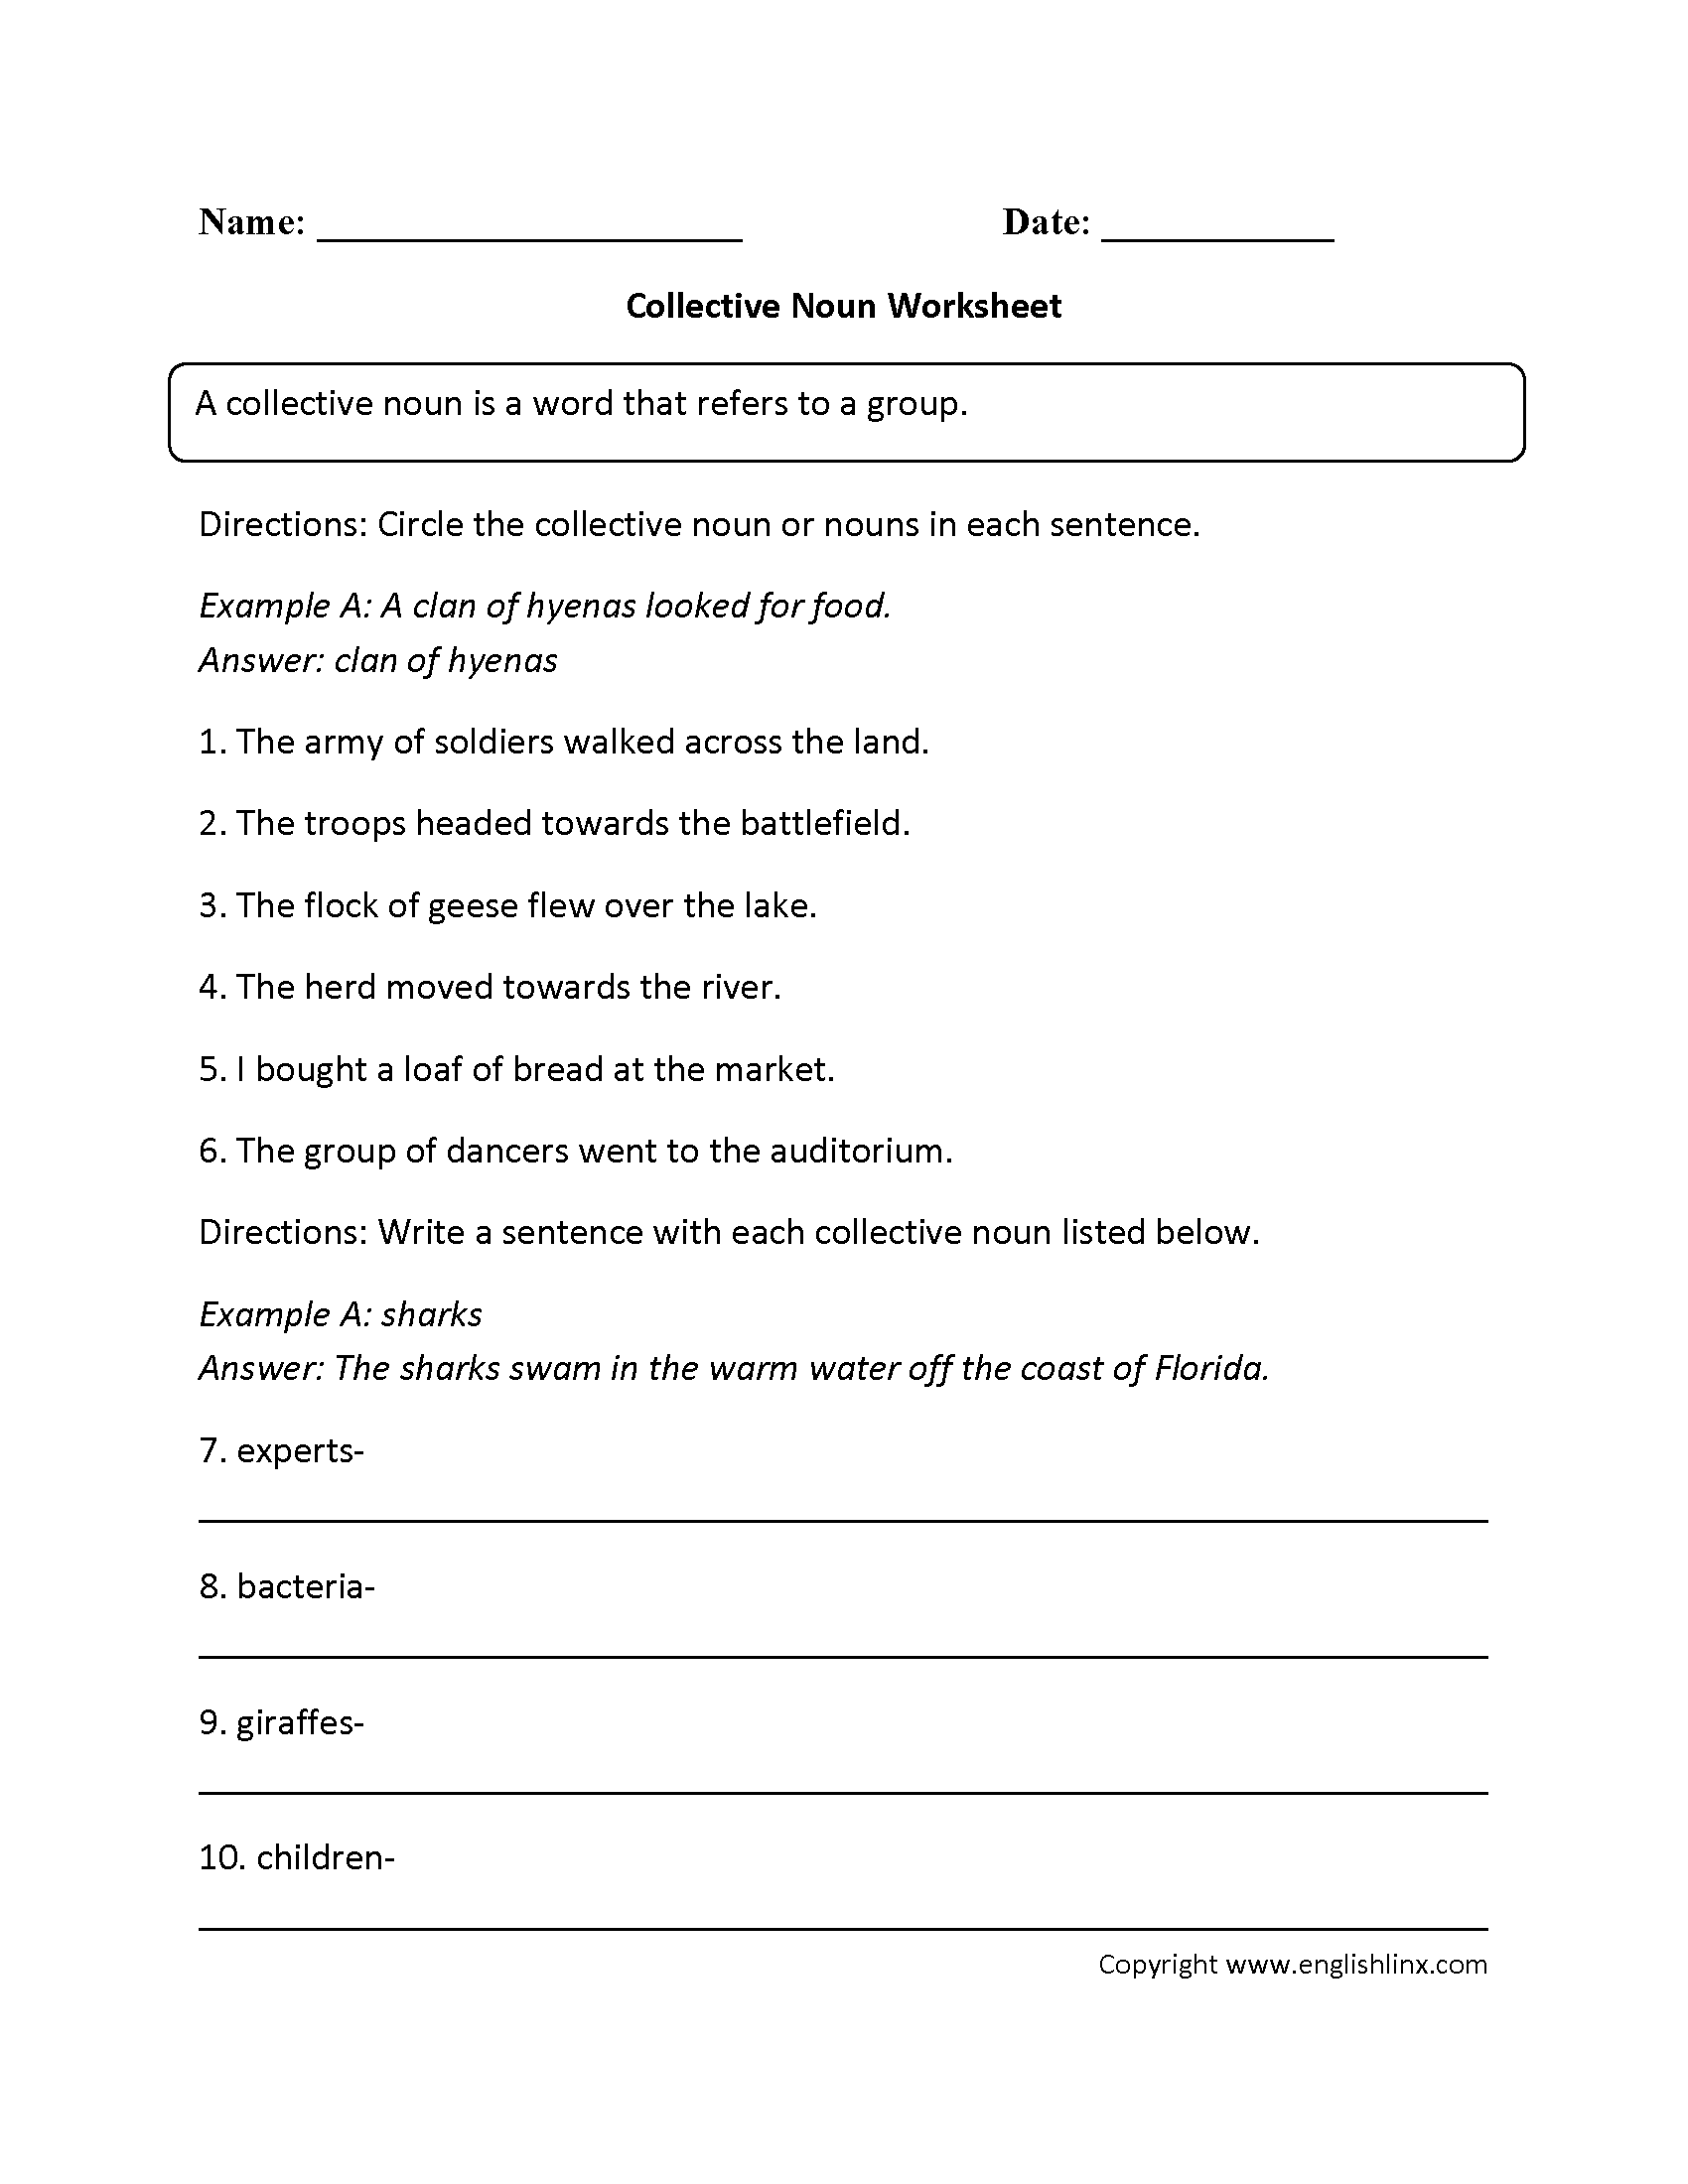 Worksheets Collective Nouns Worksheet nouns worksheets collective worksheet